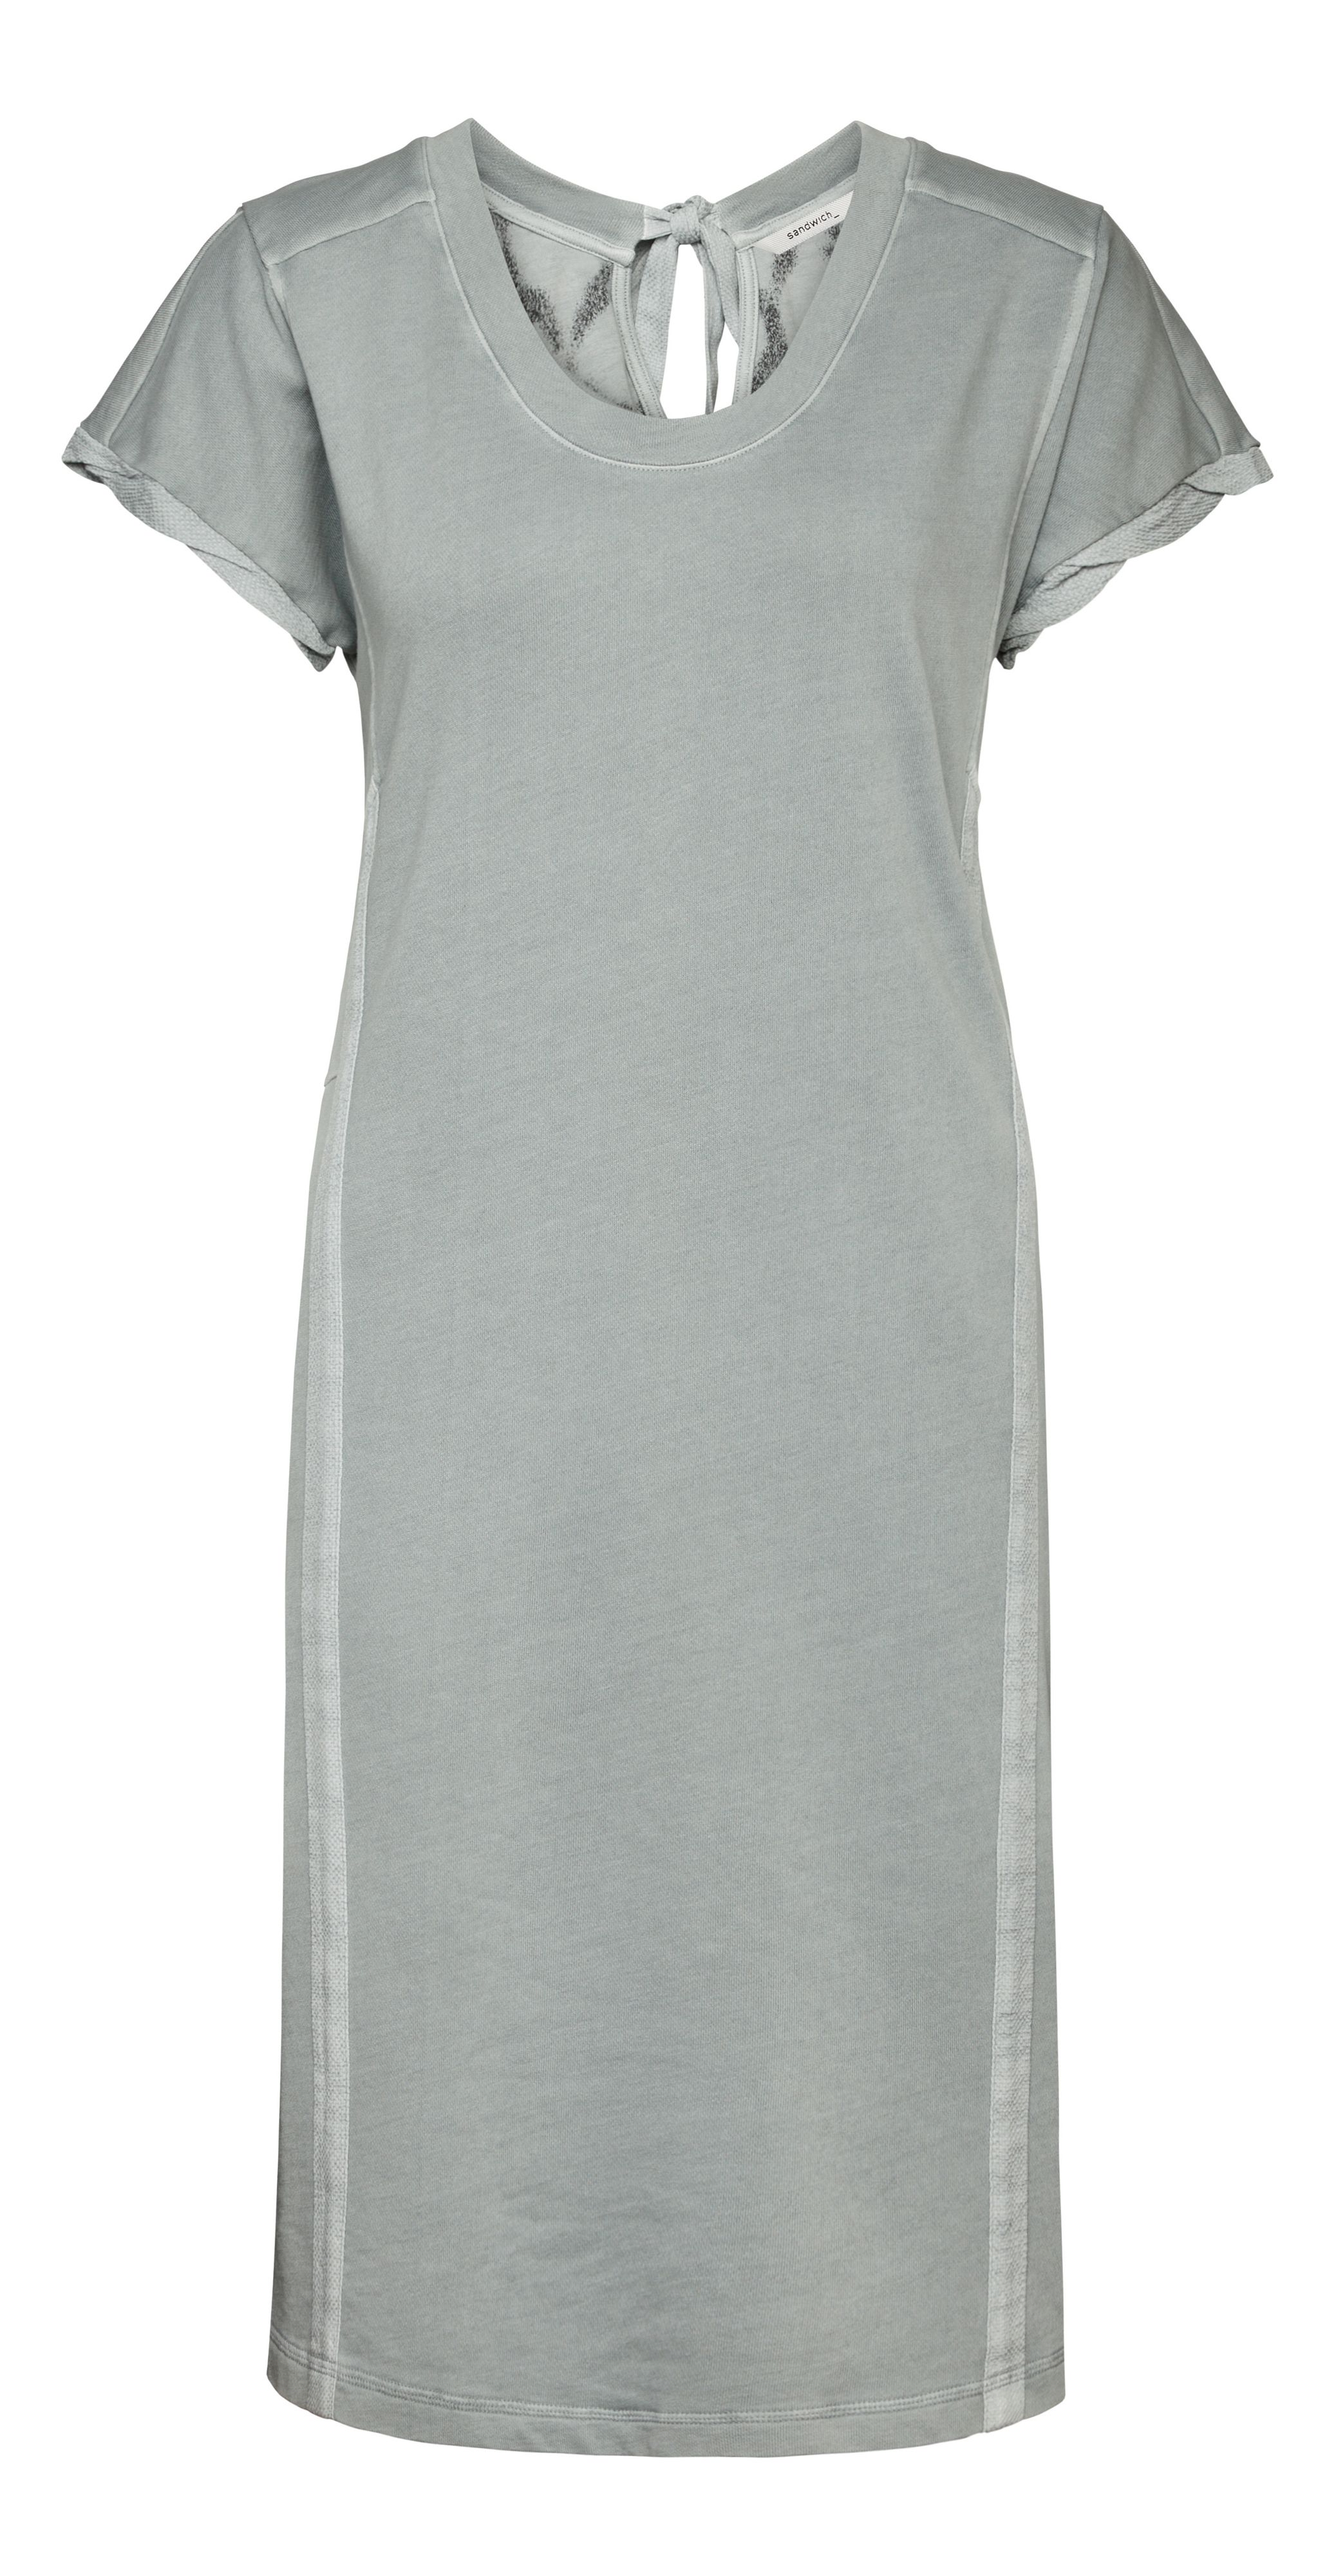 Sandwich Sandwich Cosy sweatshirt dress, Mid Grey Marl